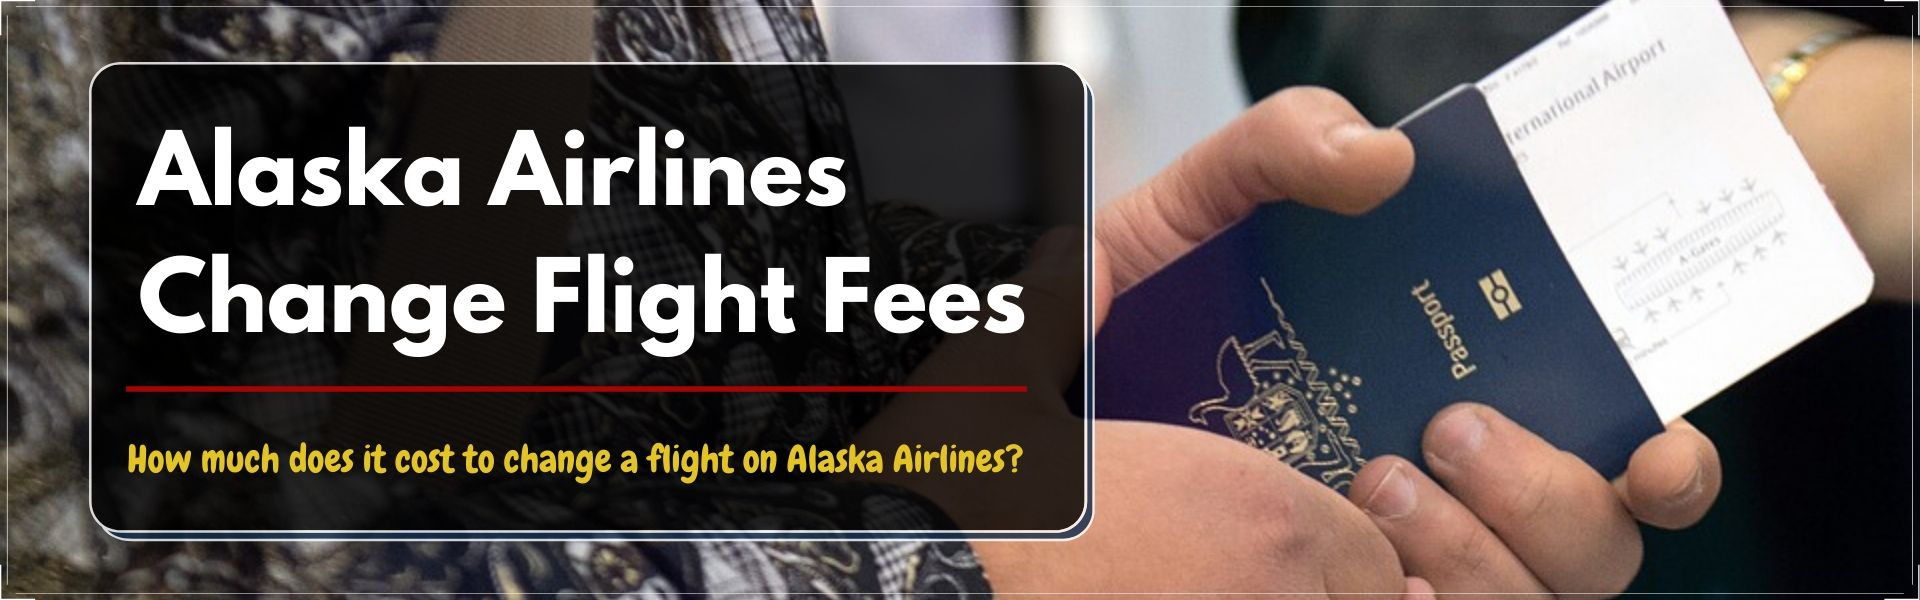 2020-06-13-06-01-42How much does it cost to change a flight on Alaska Airlines